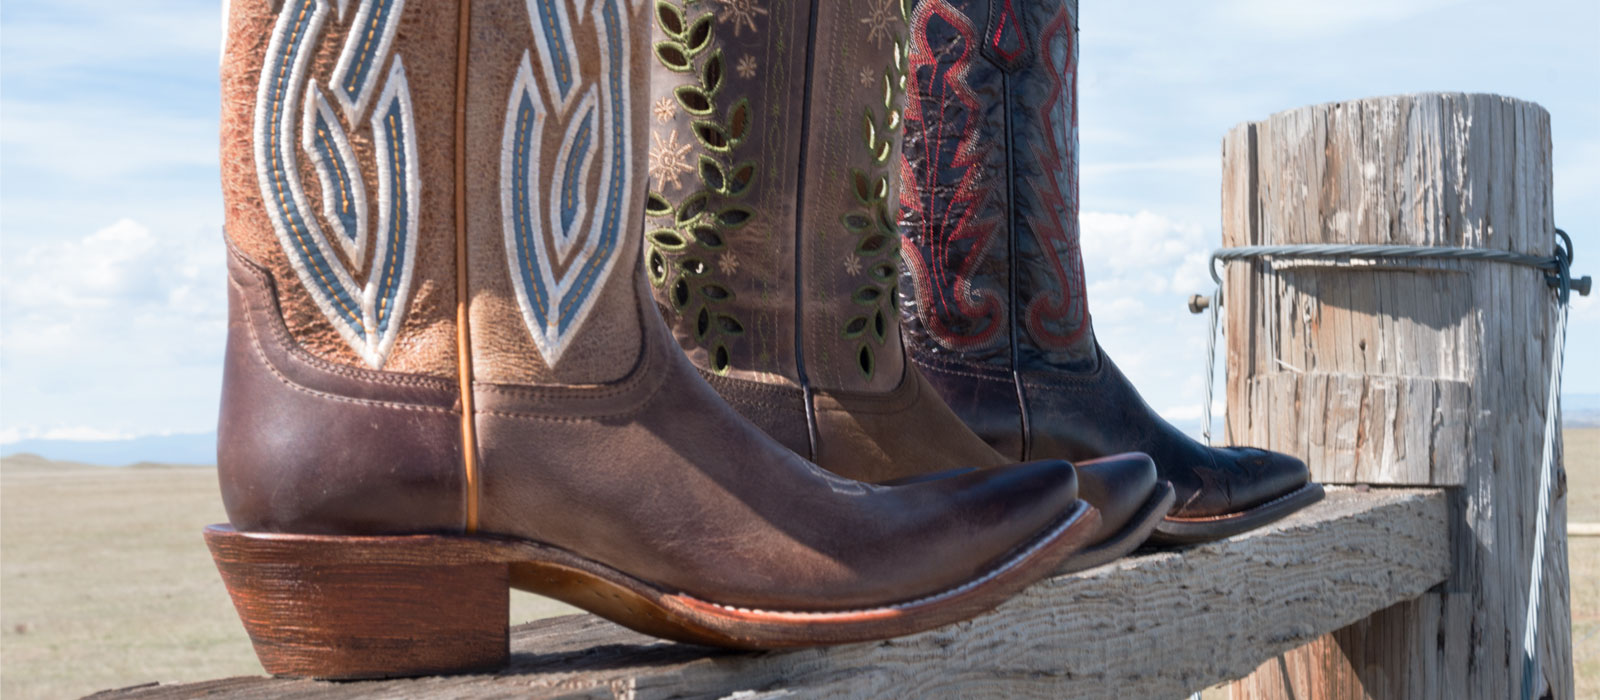 9d8c3c8183bb The Western Boots Guide  Sierra